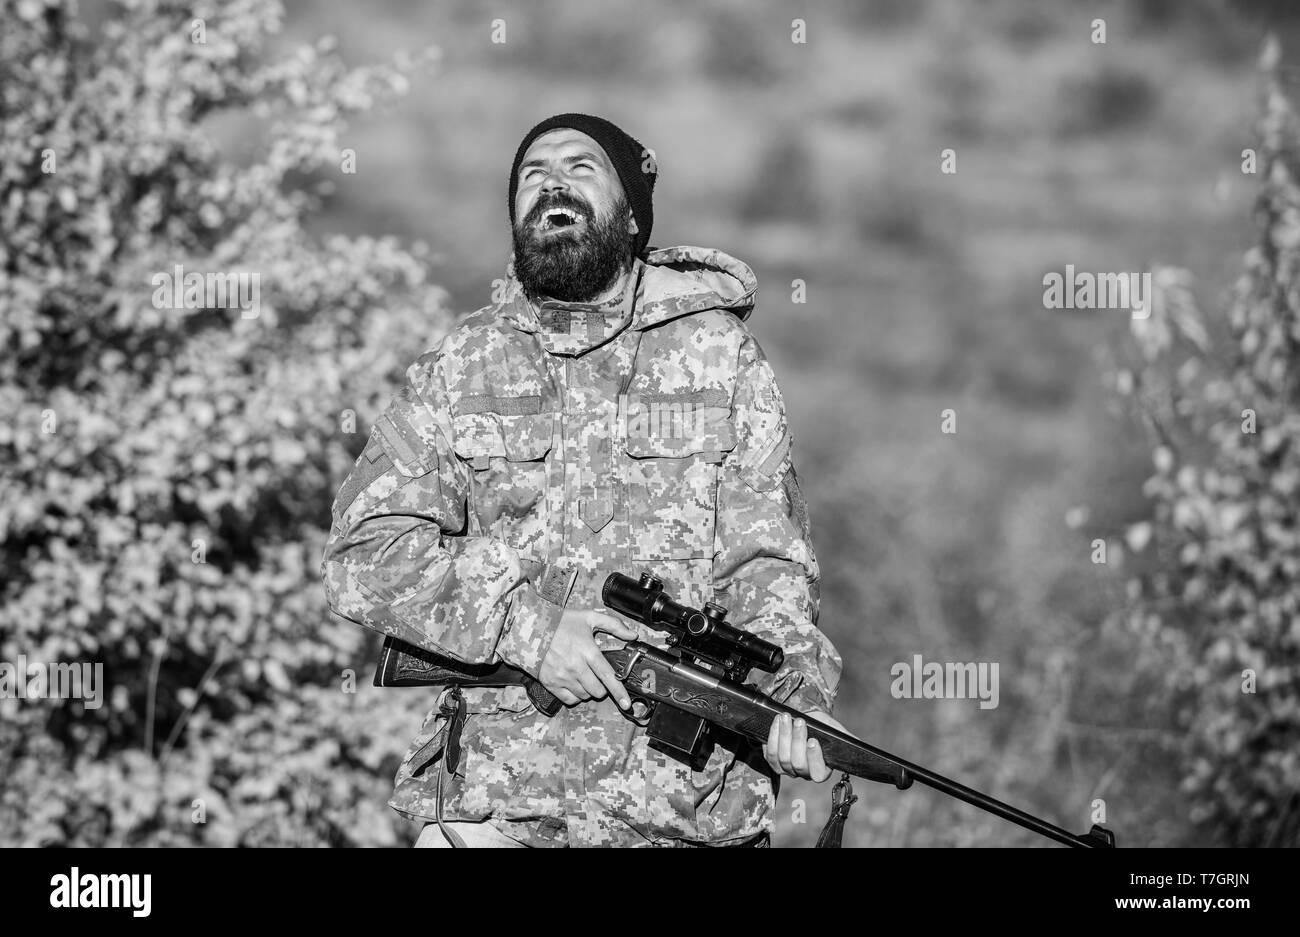 Man brutal gamekeeper nature background. Regulation of hunting. Hunter hold rifle. Bearded hunter spend leisure hunting. Focus and concentration of experienced hunter. Hunting masculine hobby concept. - Stock Image